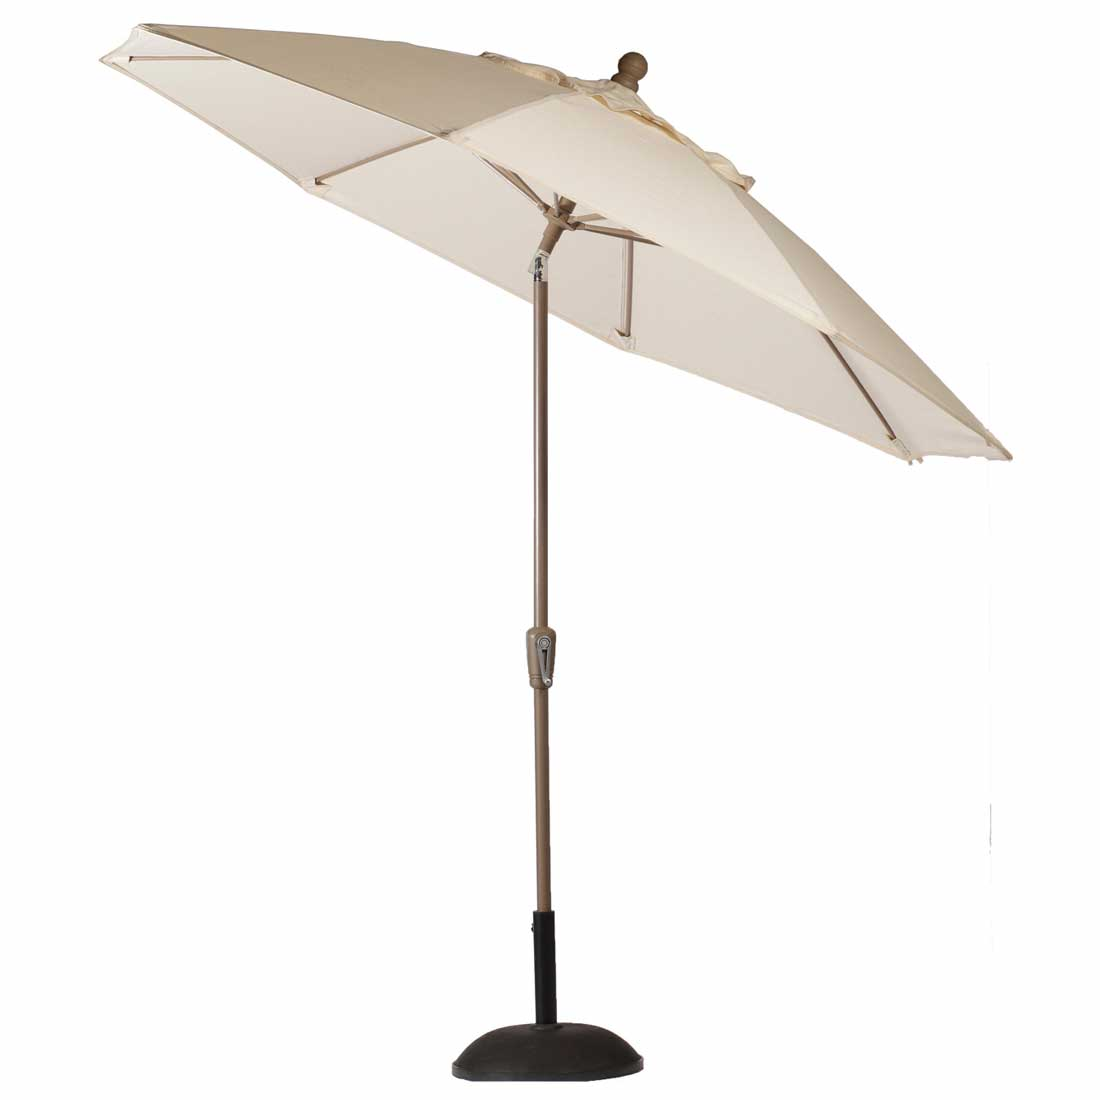 9 Crank Auto Tilt Umbrella Outdoor Patio Umbrella